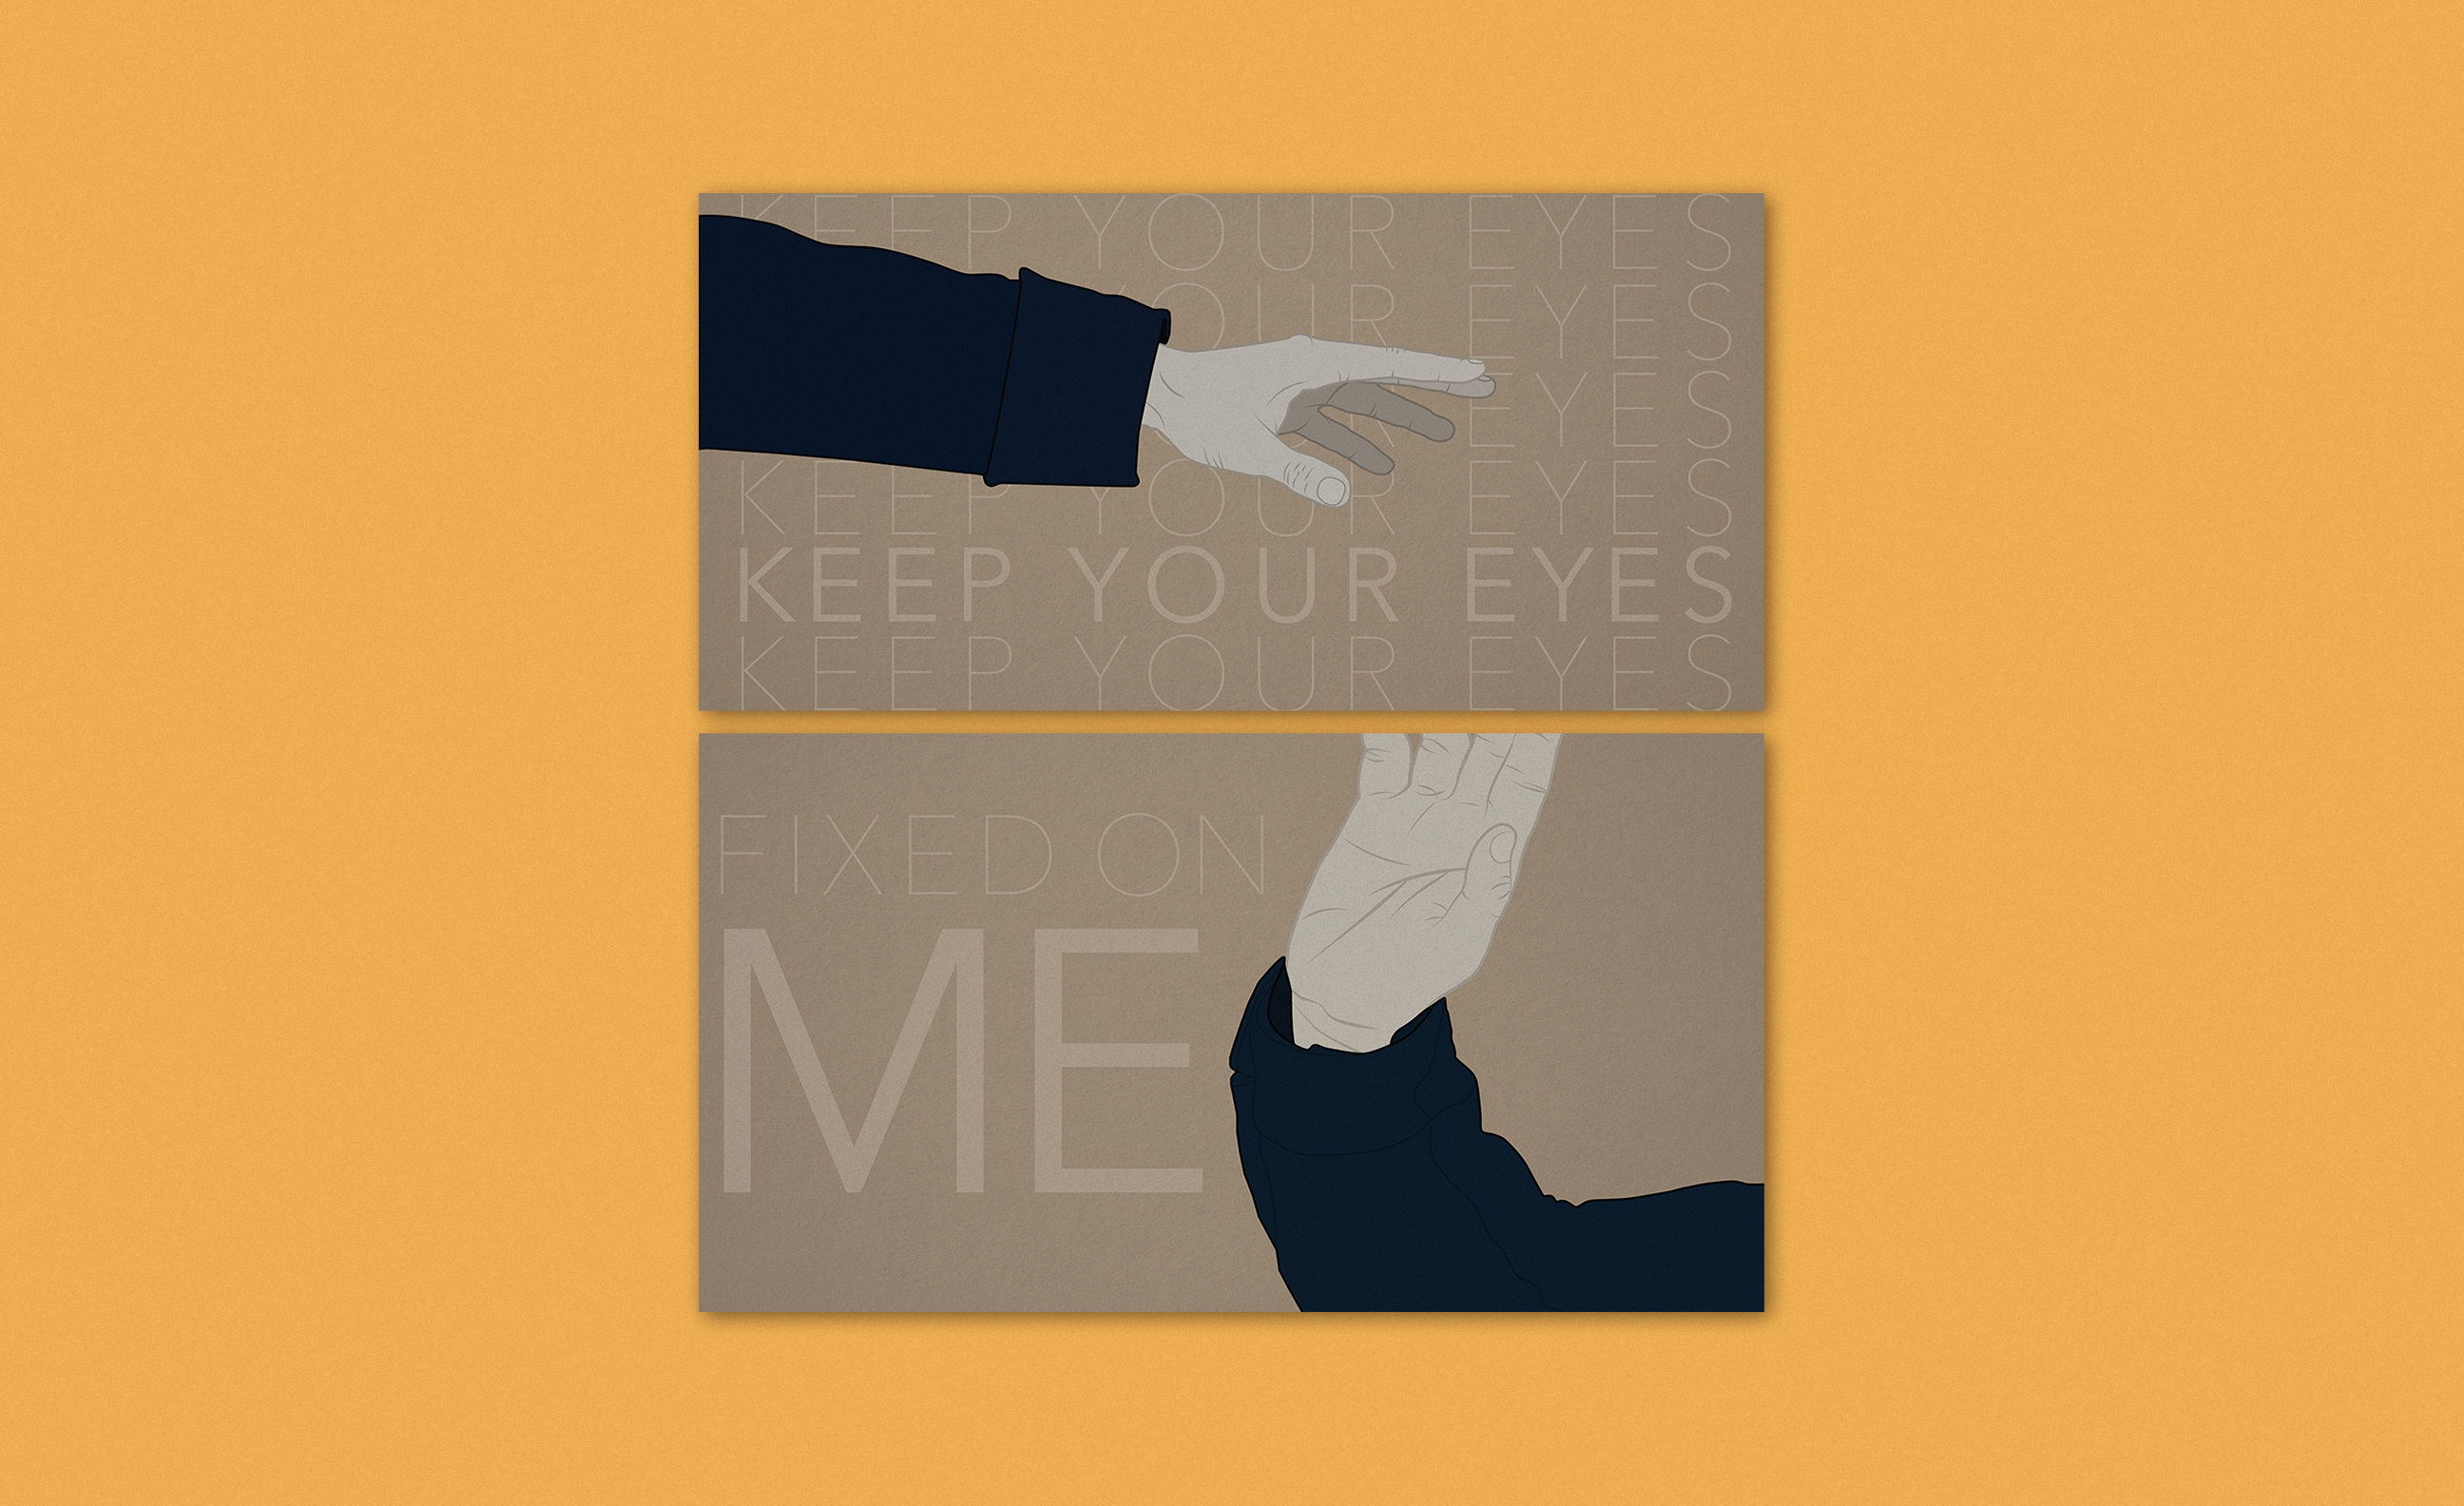 """A two-panel vector illustration over a mustard background. The top panel features a pale hand reaching out with a dark blue sleeve and the copy """"Keep your eyes"""" repeated in the background. The lower panel shows a pale hand reaching up toward the top panel, also with a dark blue sleeve. This panel finishes the Sherlock television show quote with """"fixed on me."""""""